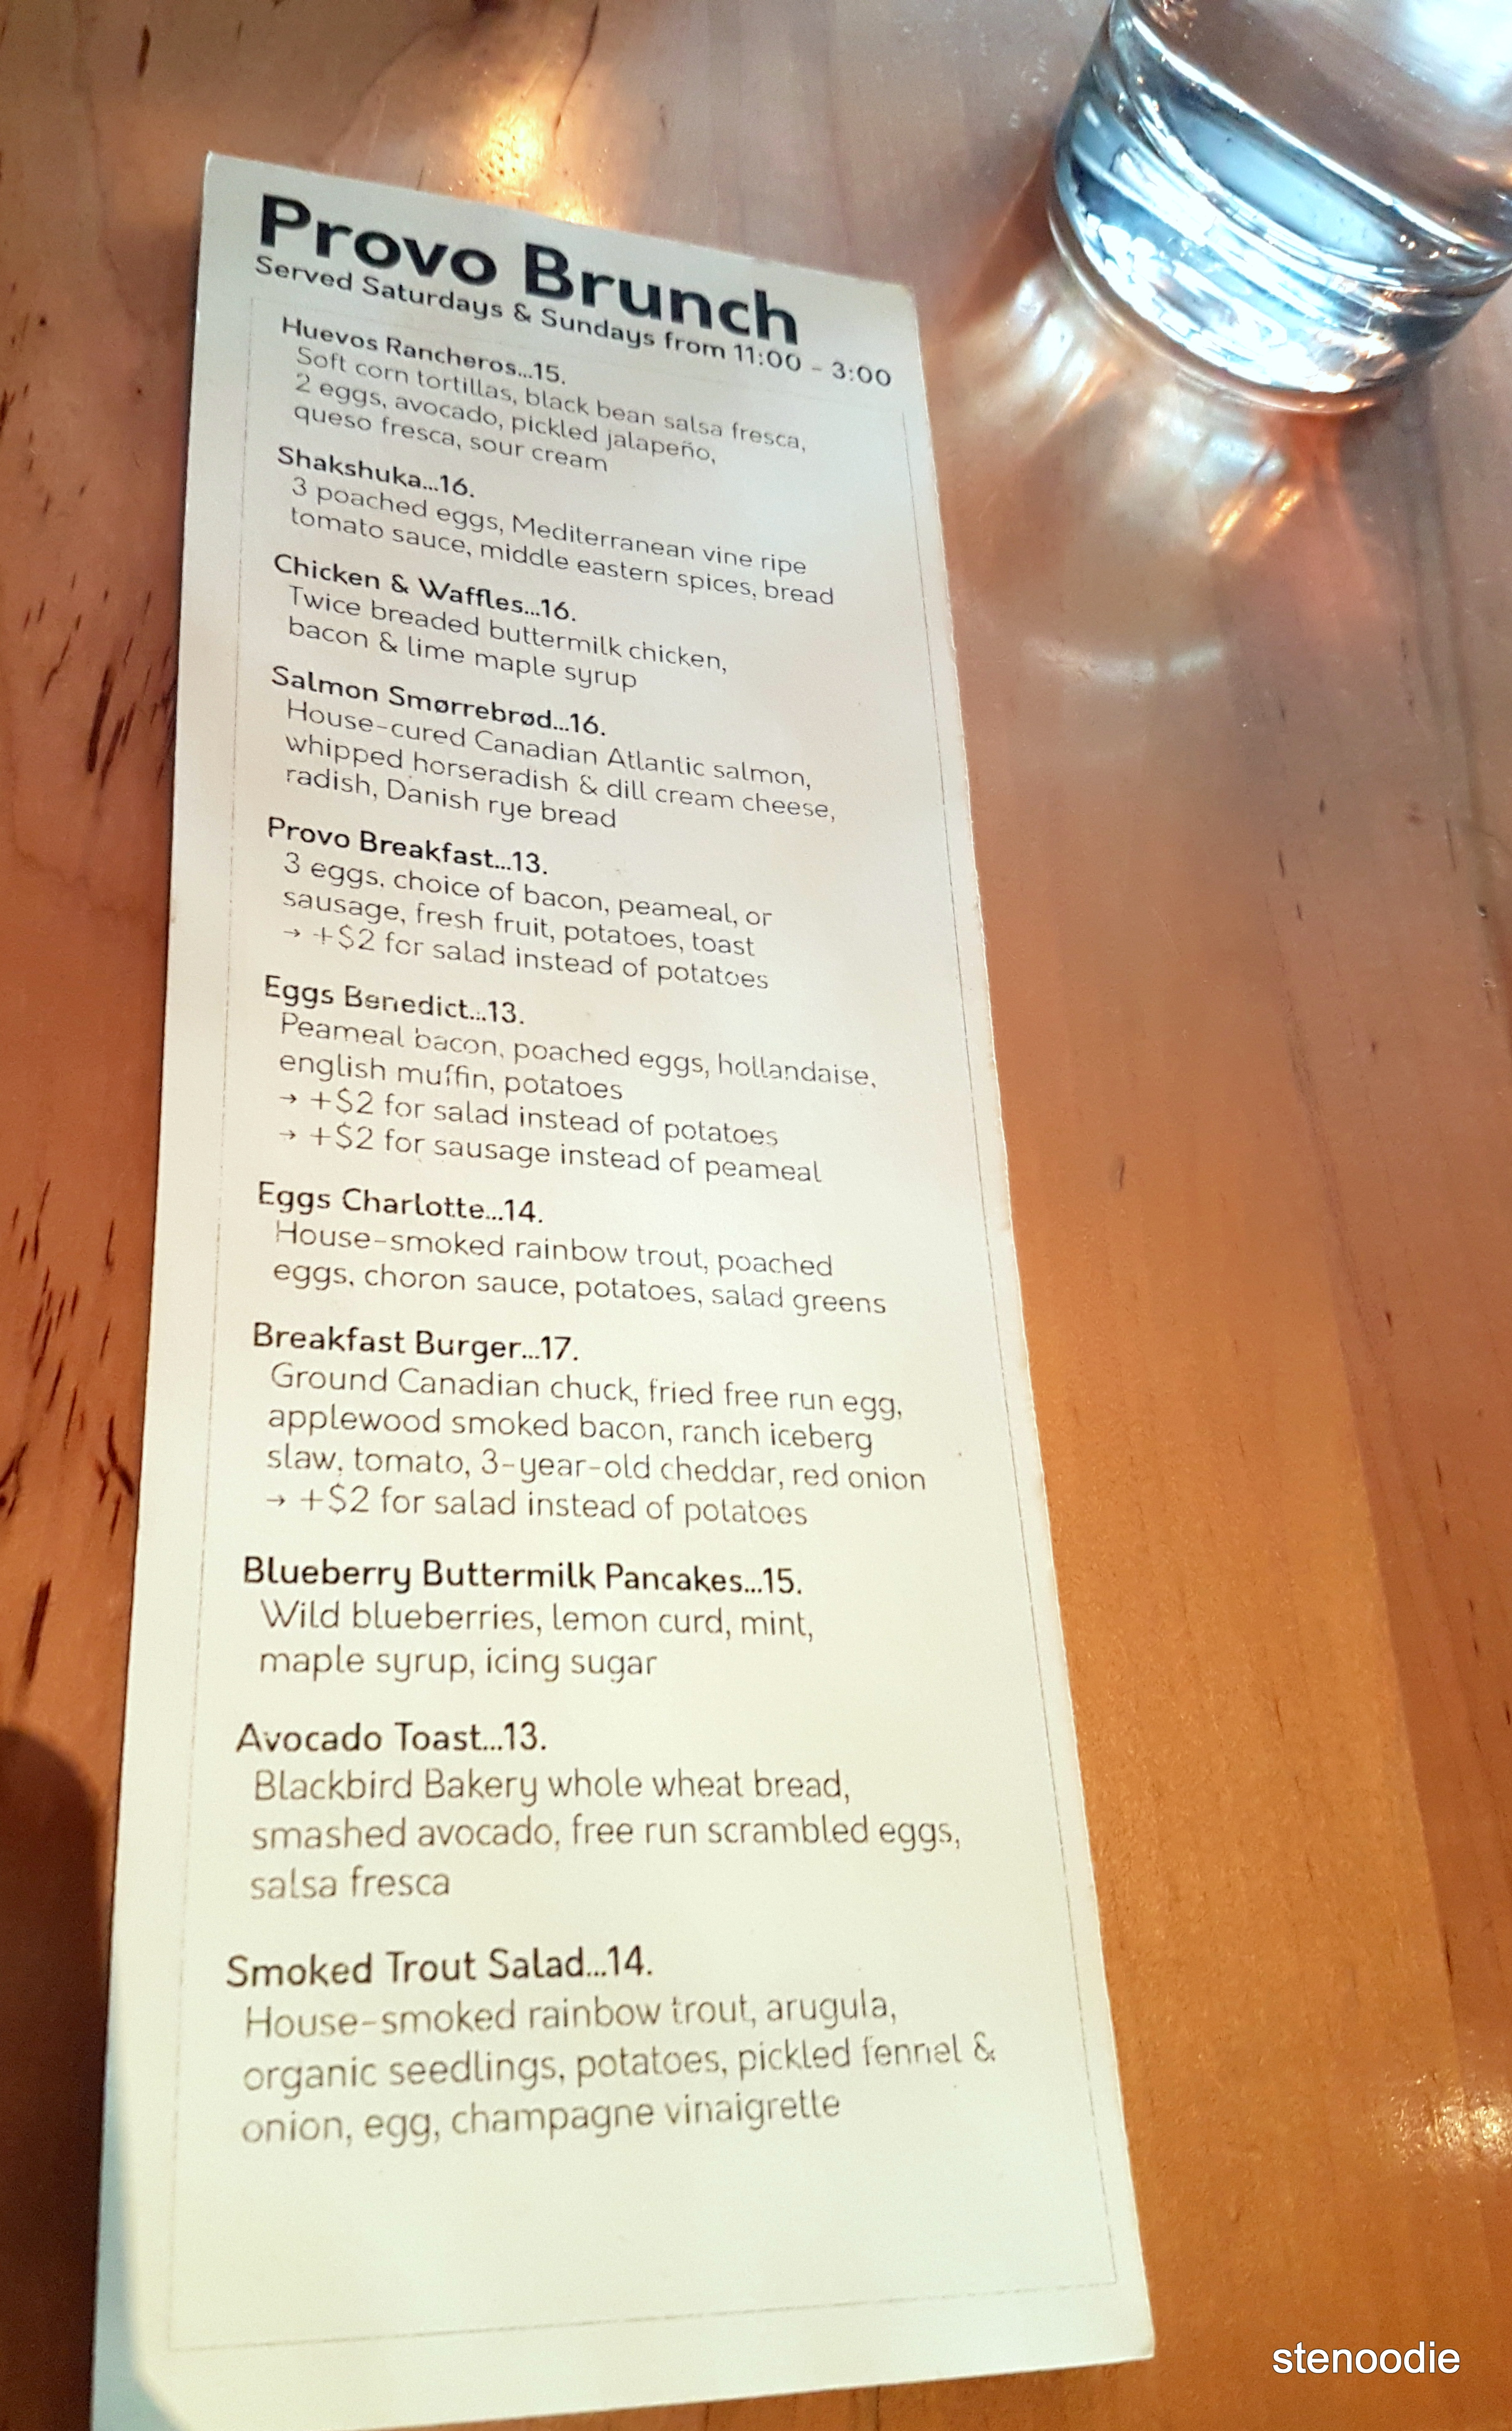 Provo FoodBar brunch menu and prices